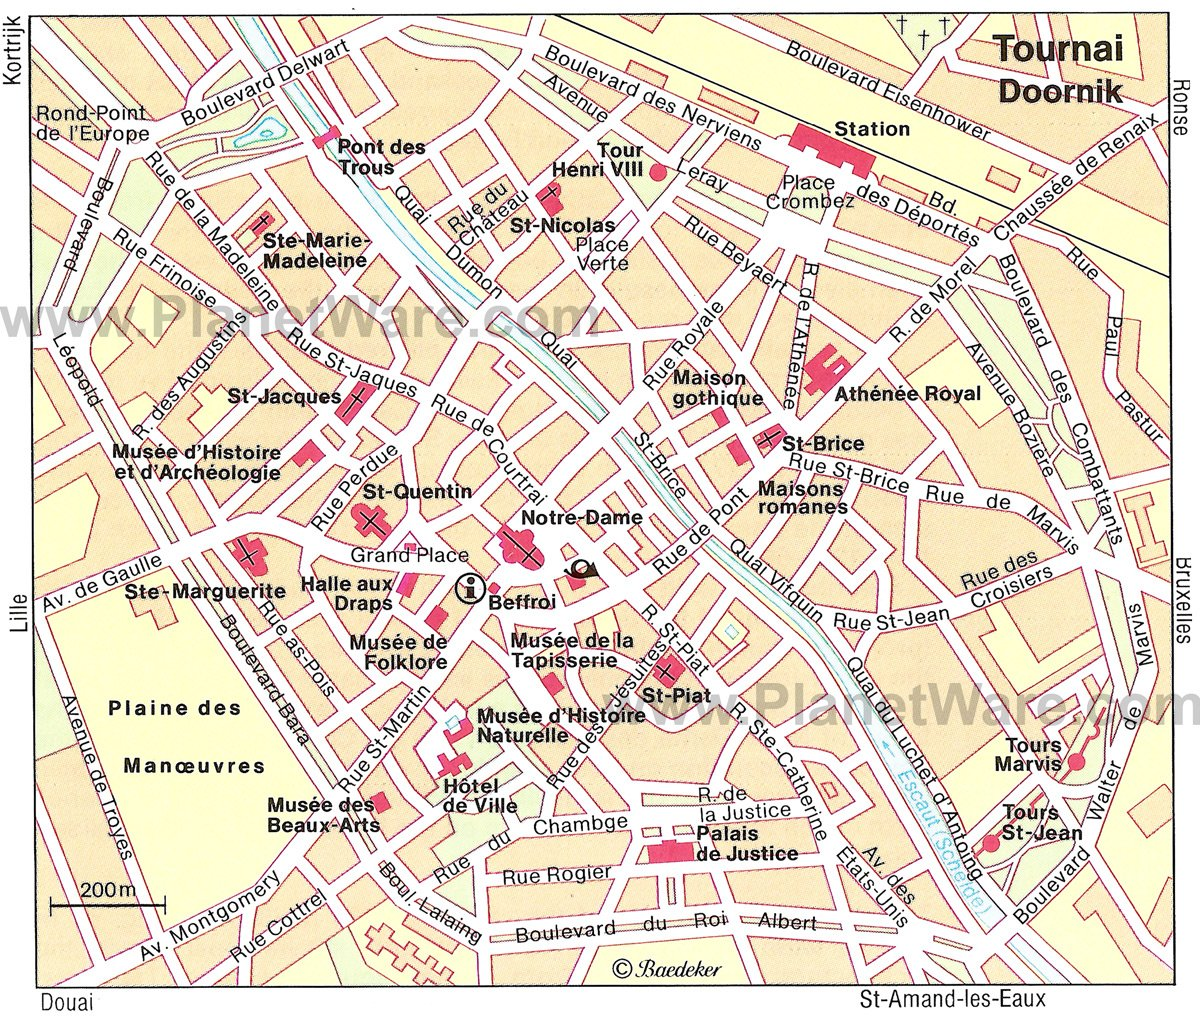 14 TopRated Tourist Attractions in Mons Bergen – Map Paris Tourist Attractions